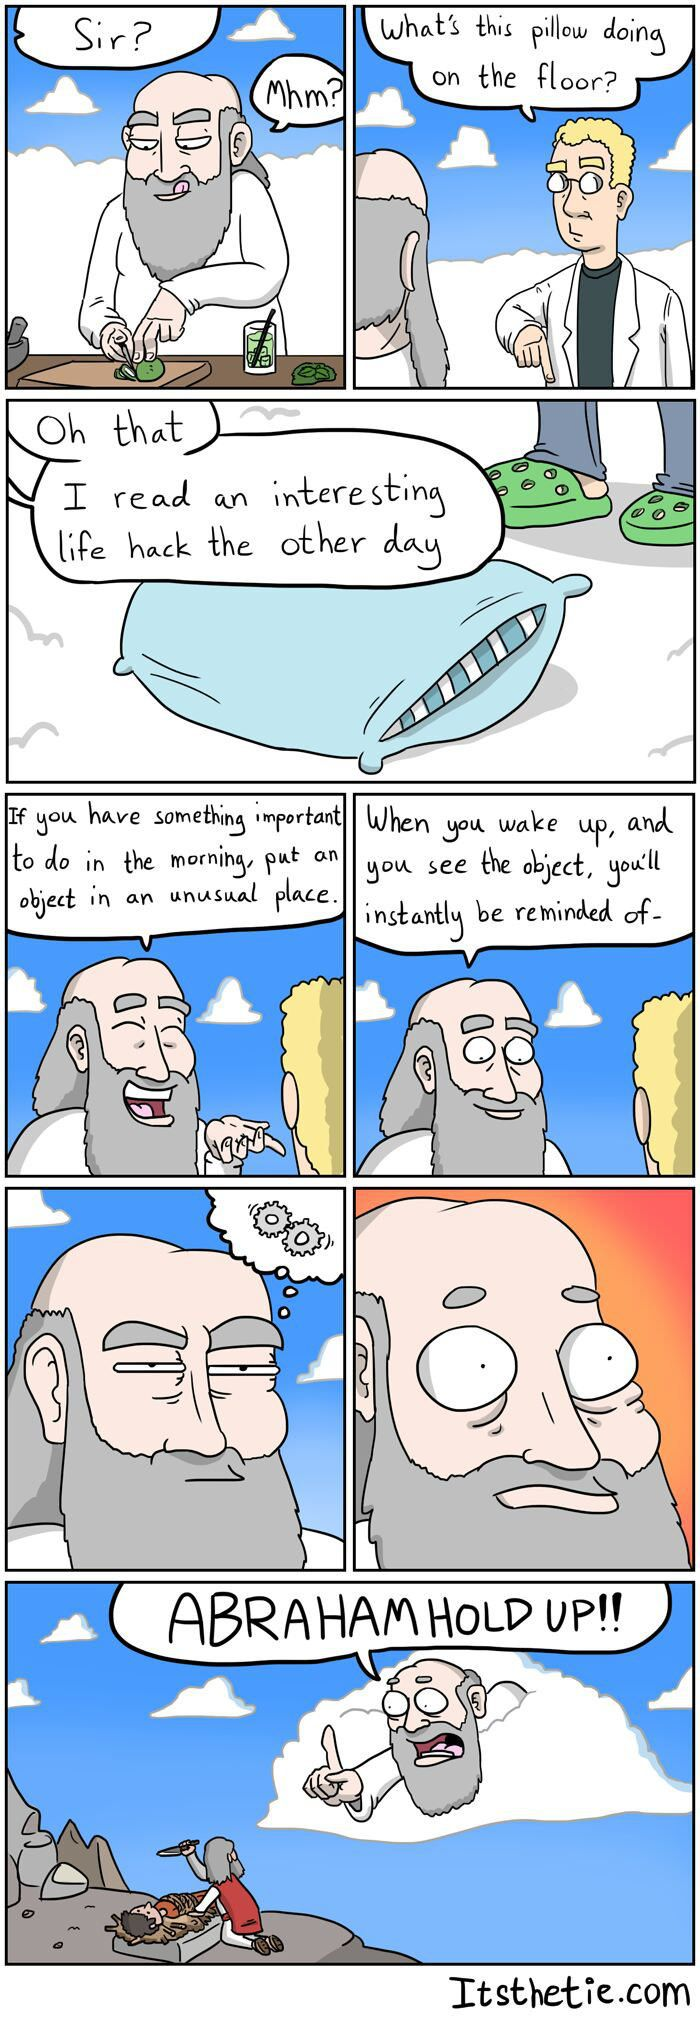 Adventures of God: Life Hack - 9GAG